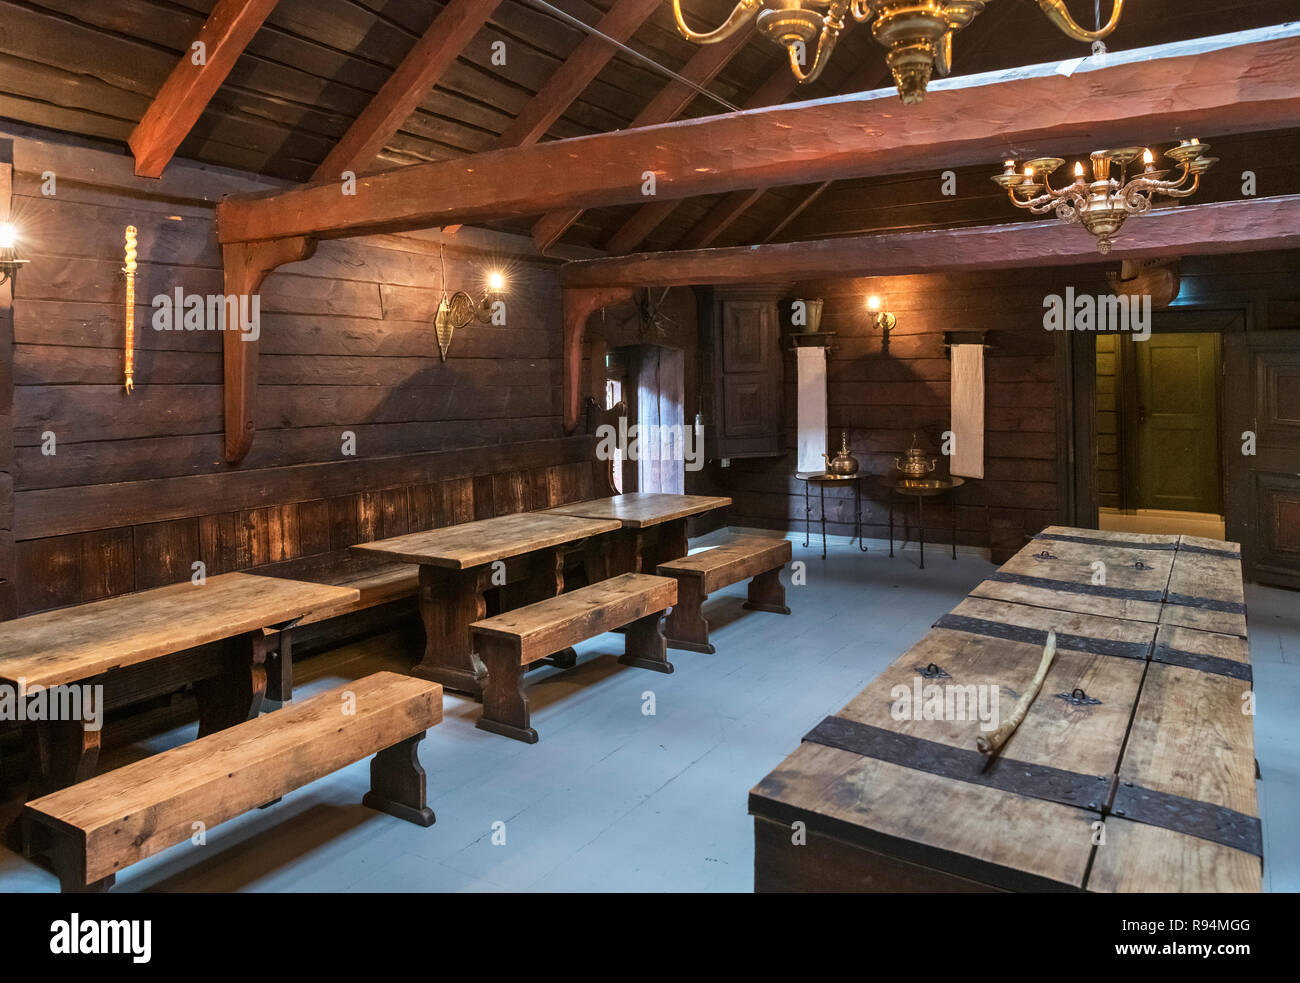 Interior of the Schøtstuene, an assembly hall which is part of the Hanseatic Museum (Det Hanseatiske Museum), Bergen, Hordaland, Norway - Stock Image